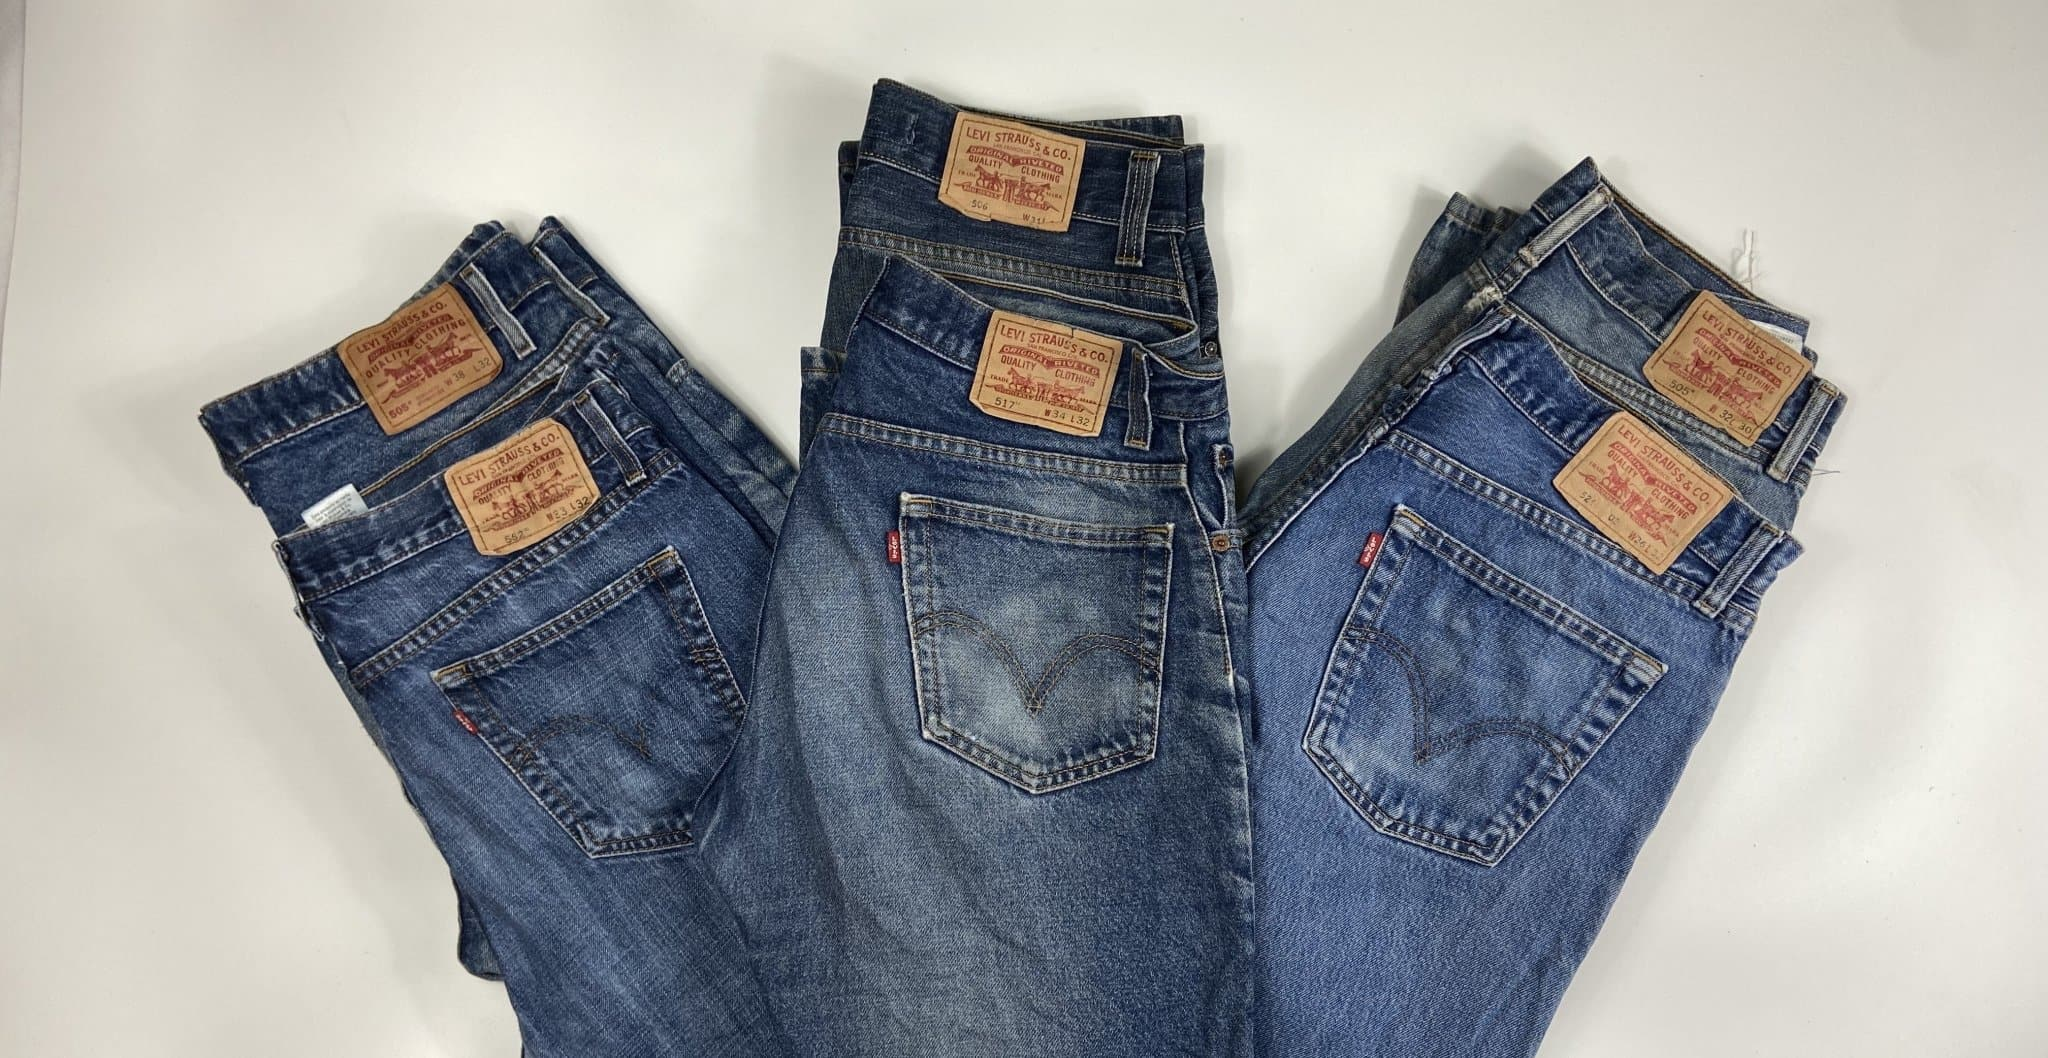 Vintage Levi's Classic Blue Zip Fly Jeans W36 L32 (BE4) - Discounted Deals UK